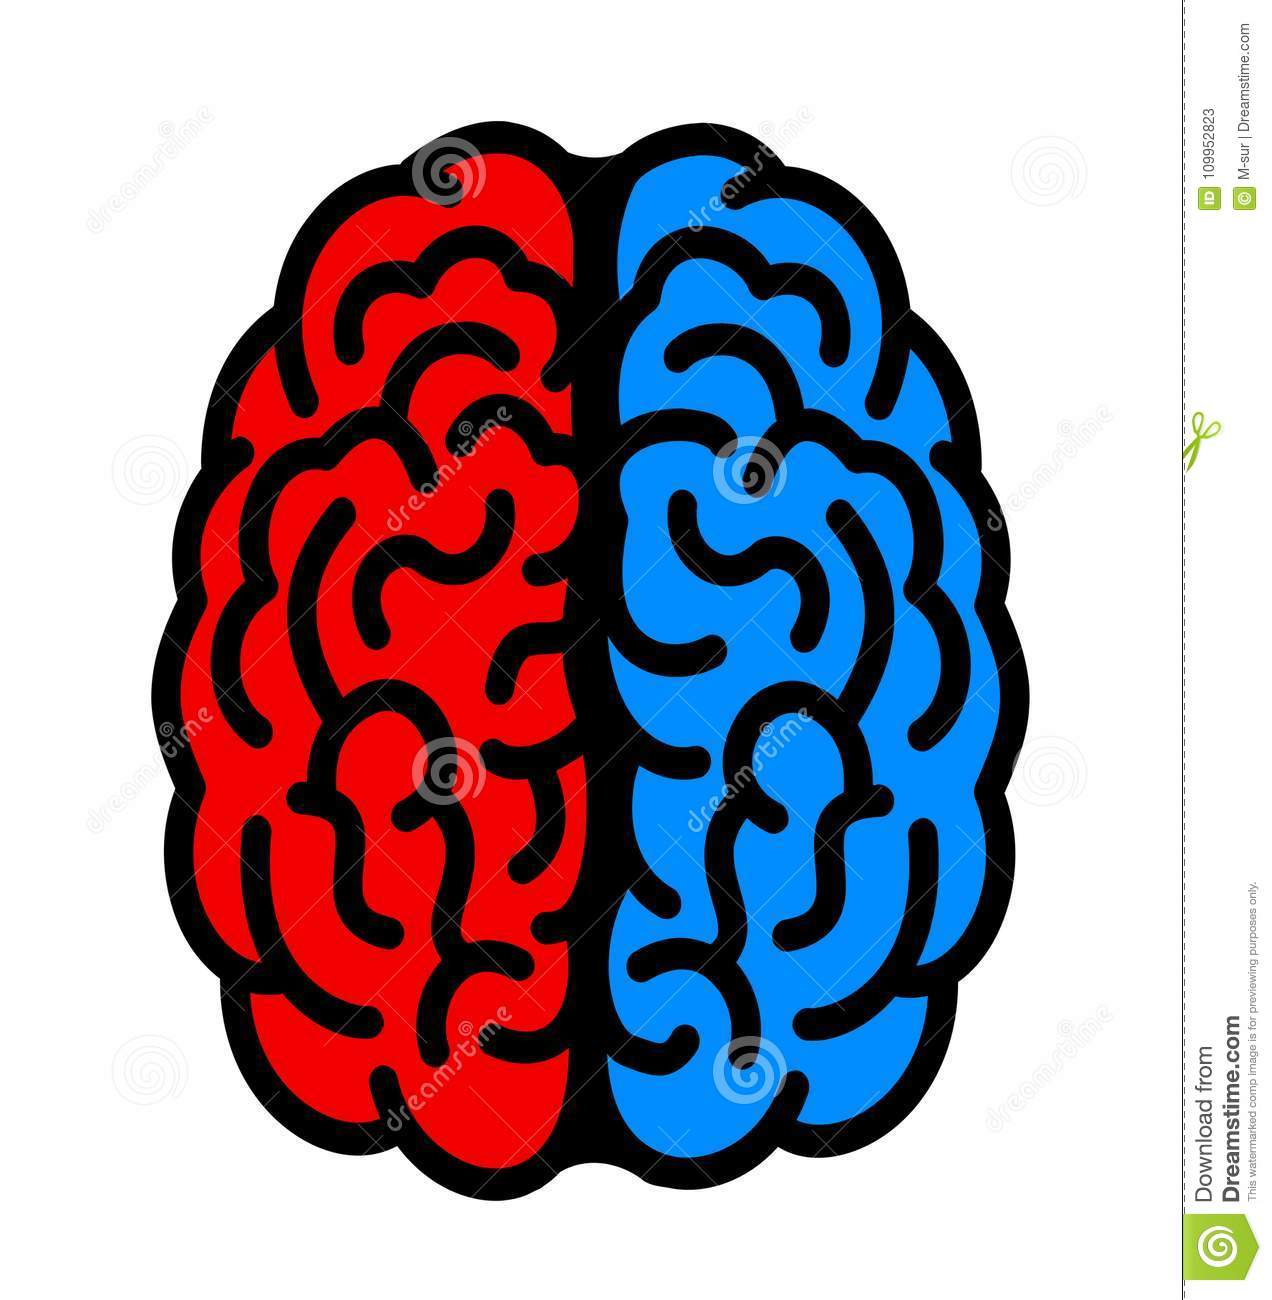 Left And Right Hemisphere Of Brain Stock Vector Illustration Of